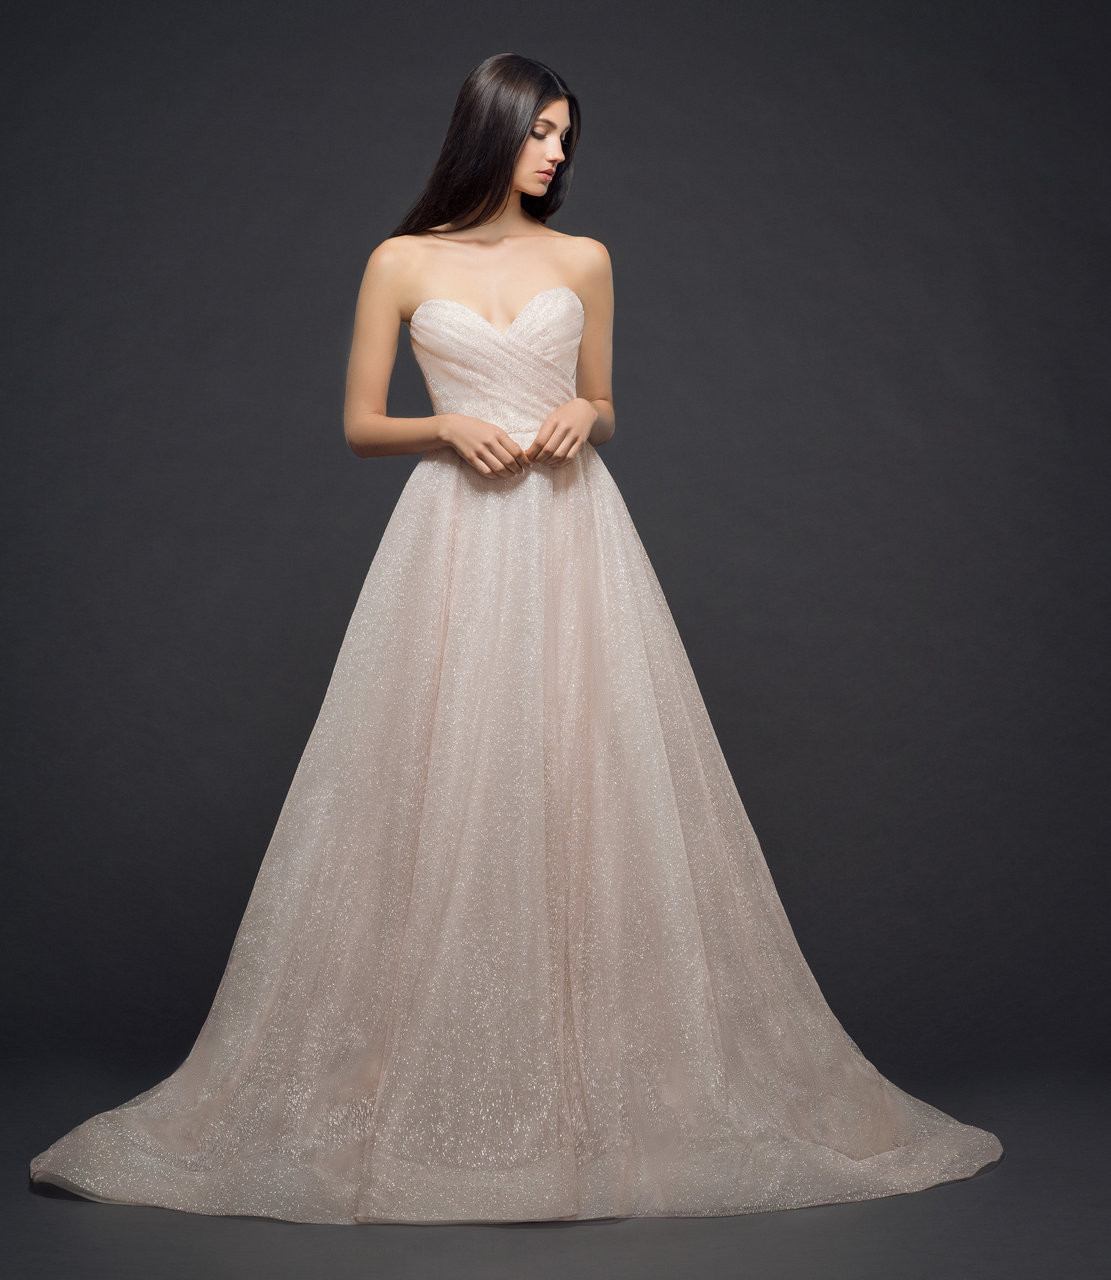 ee8ecd191602 Blush shimmer tulle ball gown, strapless sweetheart neckline, draped bodice  and natural waist,